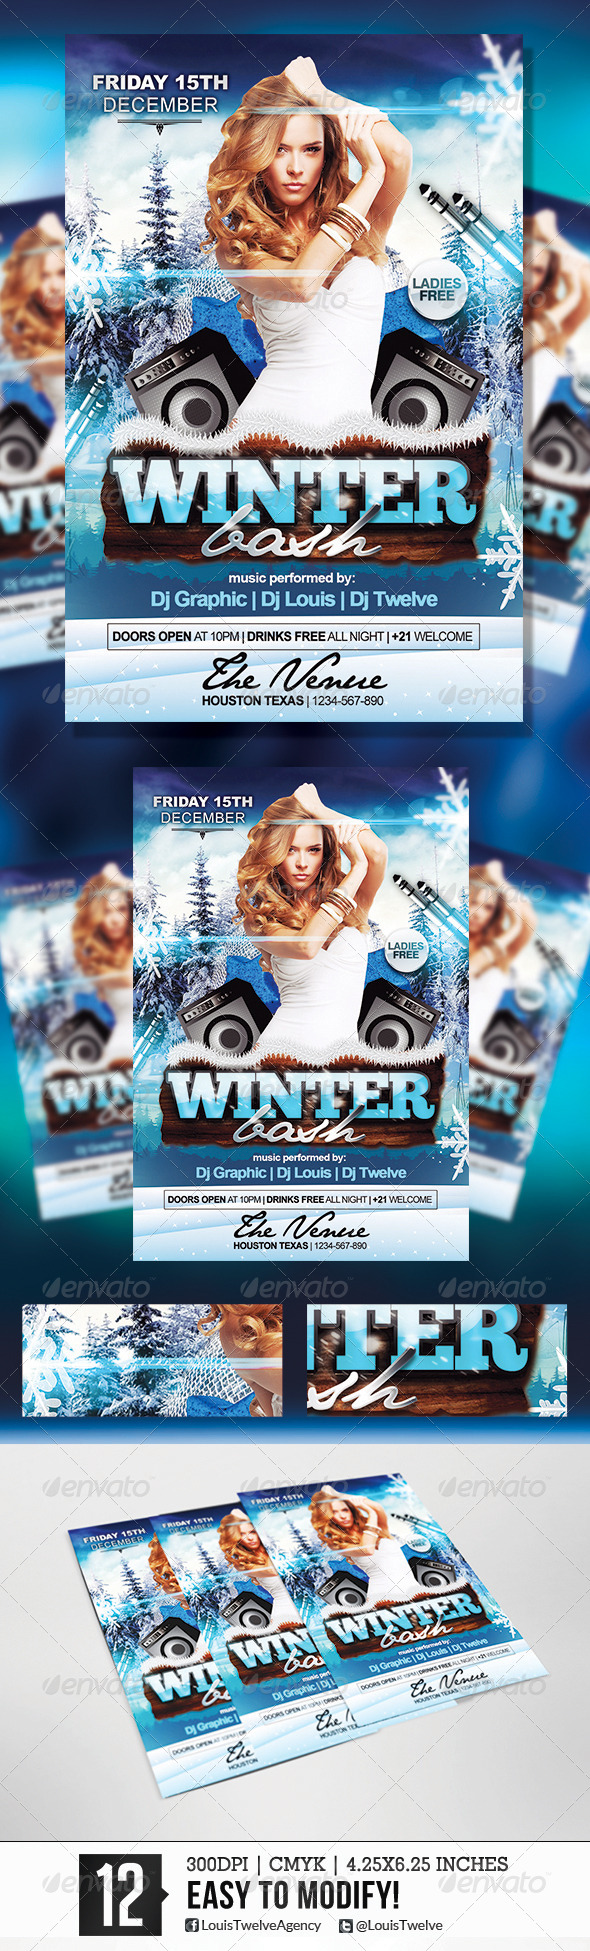 Winter Bash | Flyer Template - Clubs & Parties Events